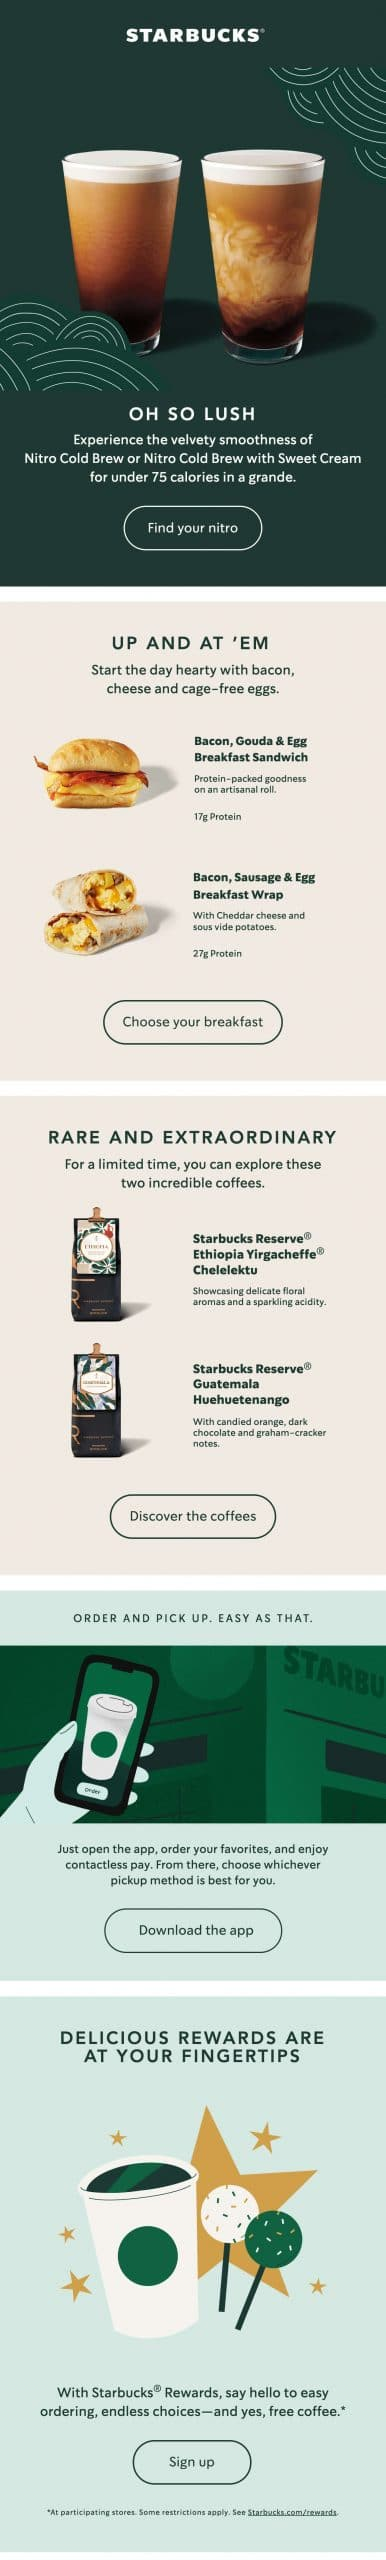 starbucks email example of background colors